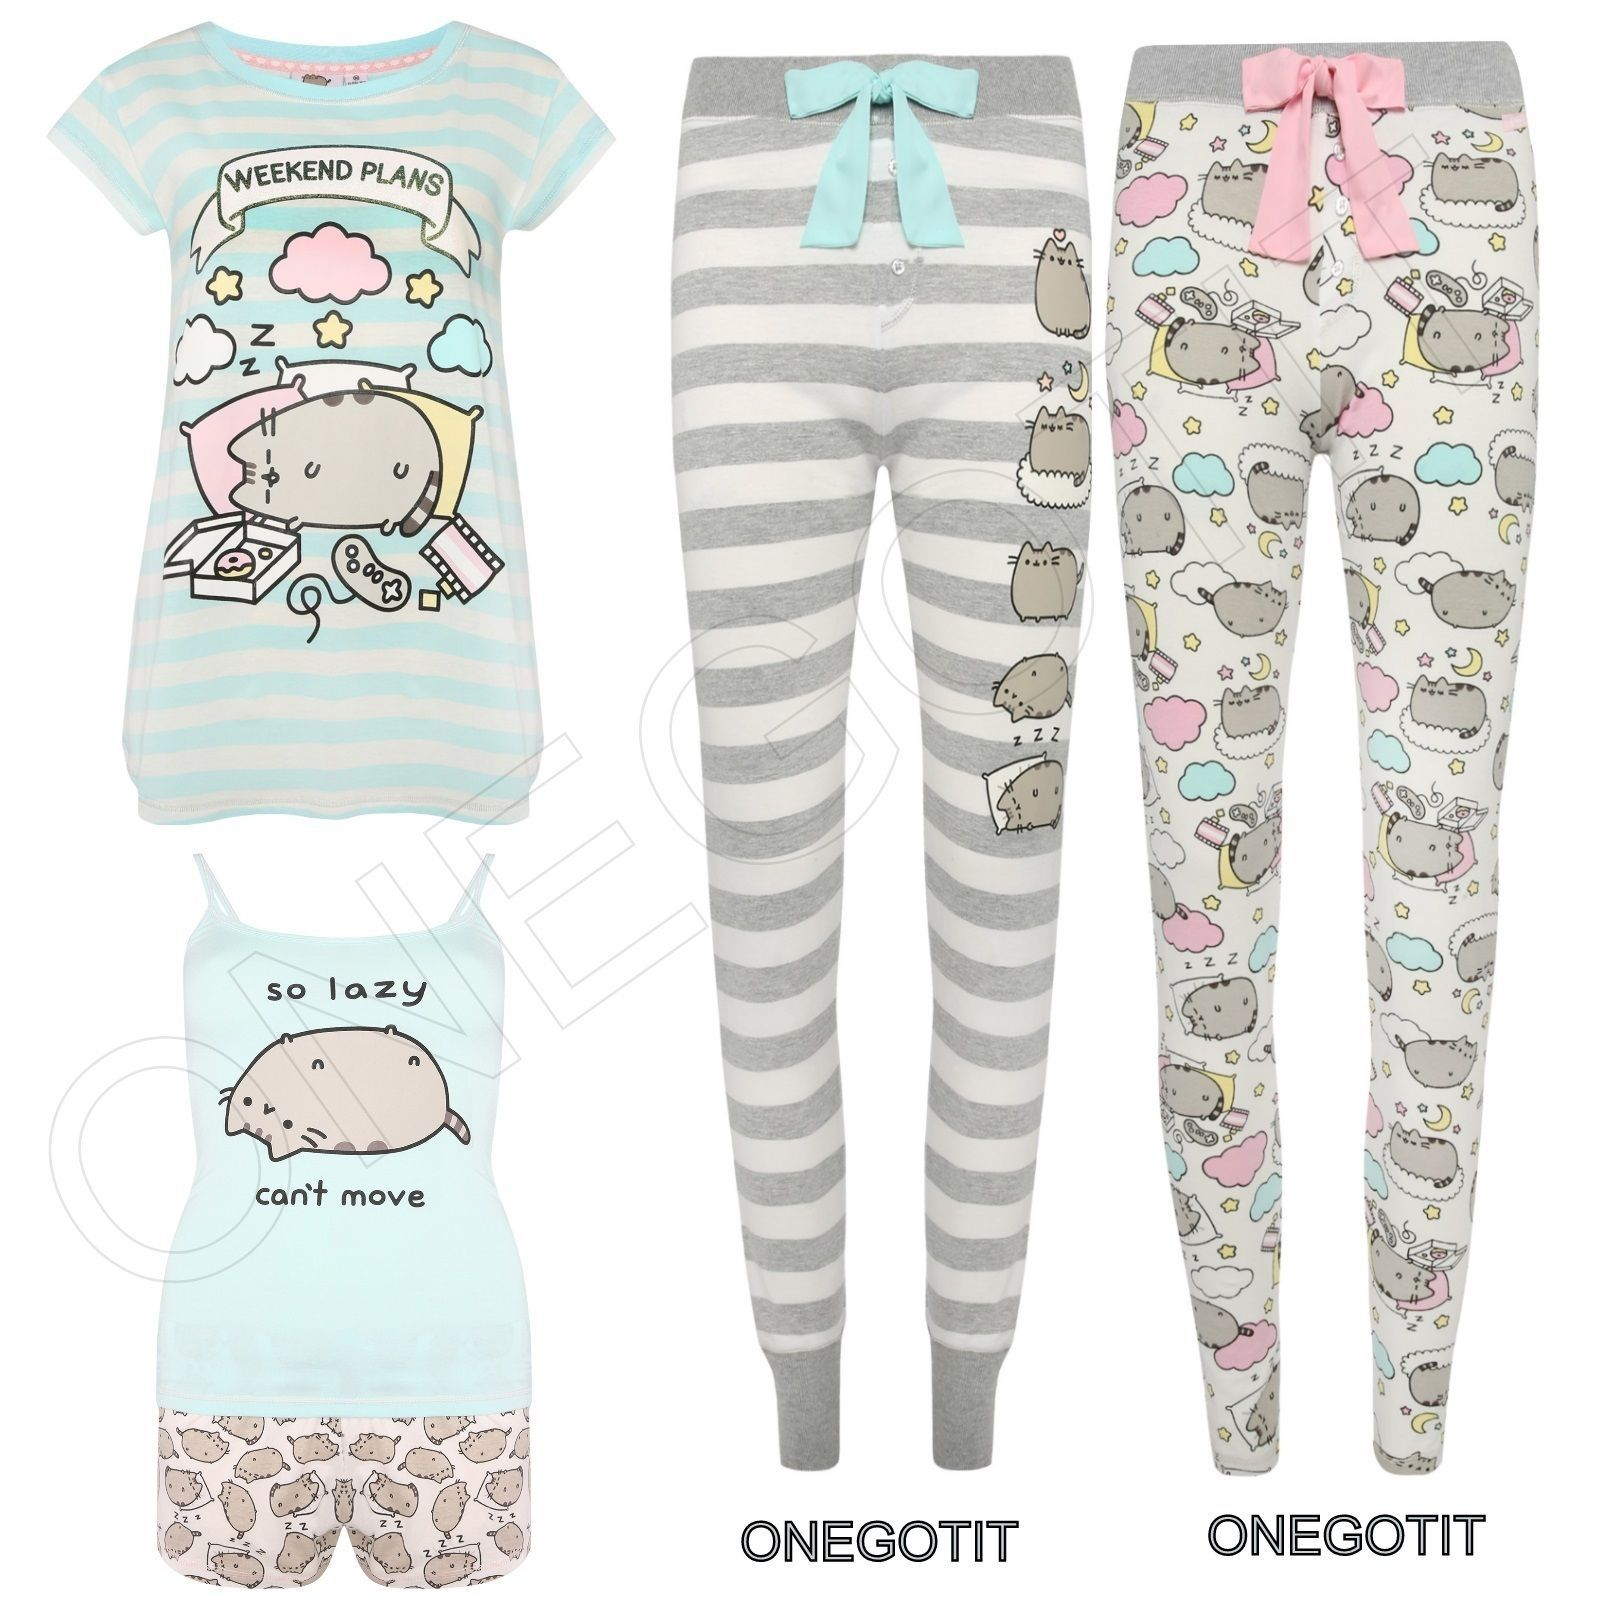 a5fe0dcb48b014 CAT PUSHEEN PRIMARK Ladies Pyjamas Set T-Shirt Legging Vest Short Girls  Womens in Clothes, Shoes & Accessories, Women's Clothing, Lingerie &  Nightwear, ...